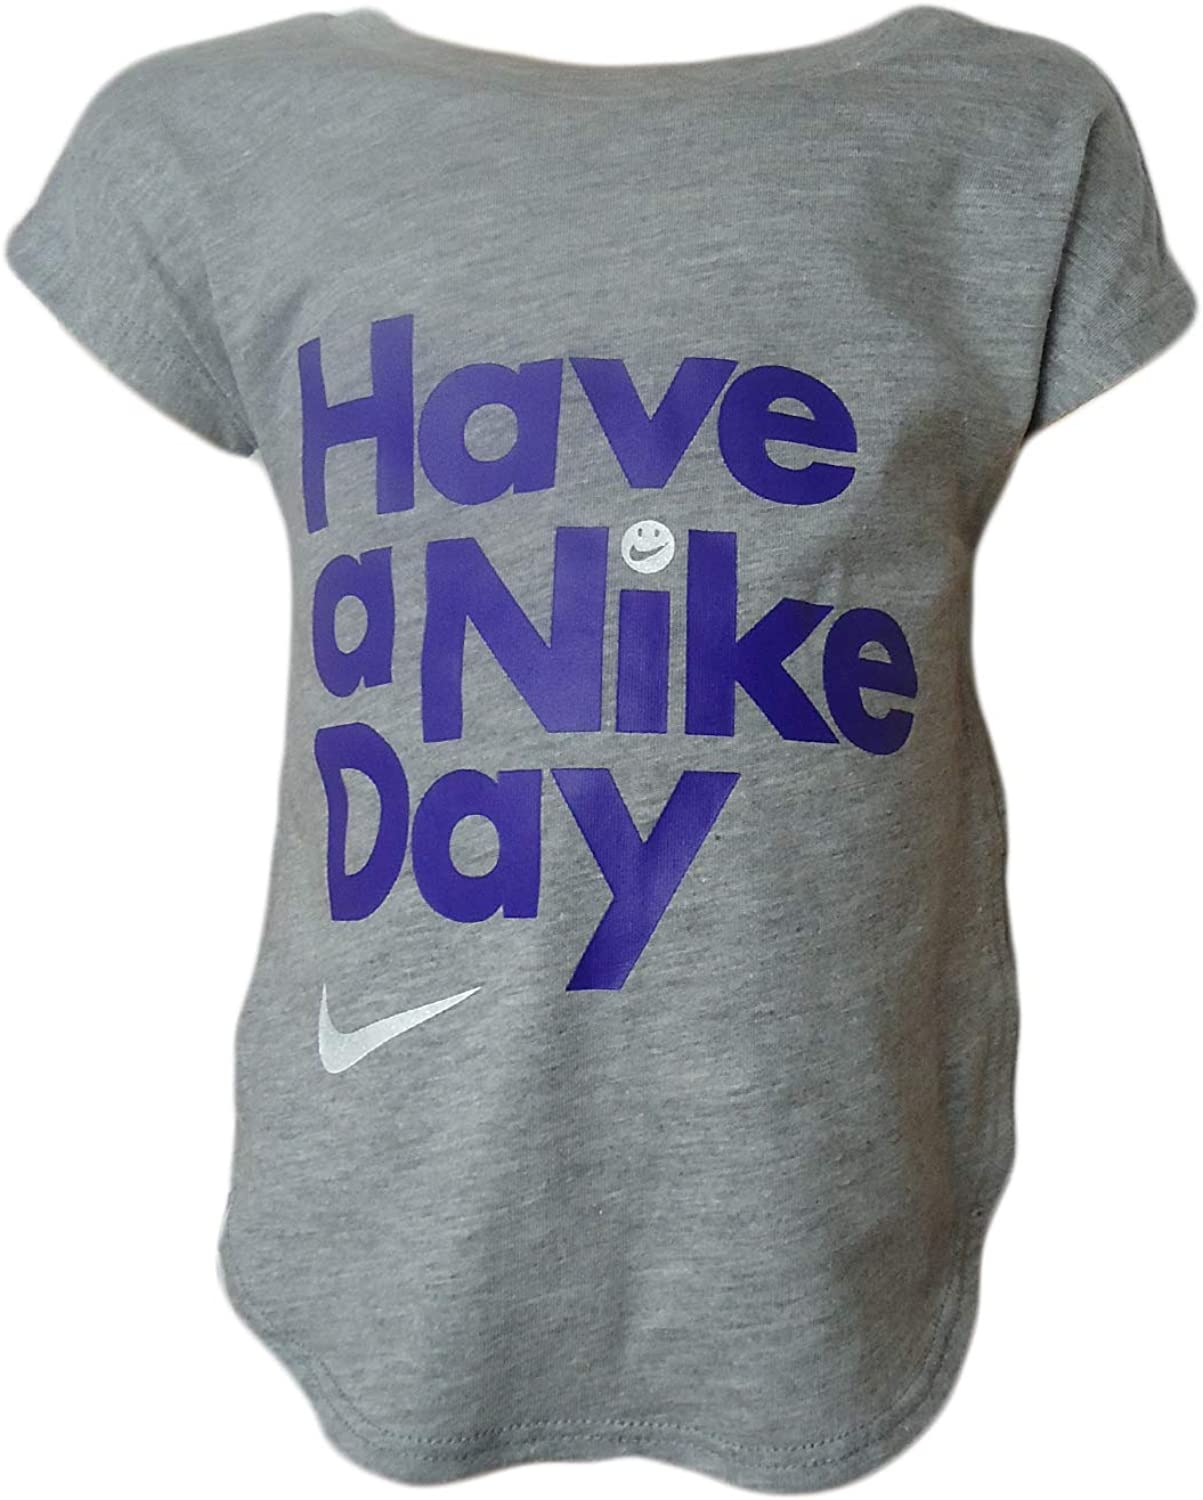 Nike Graphic ''Have a Day' Jersey